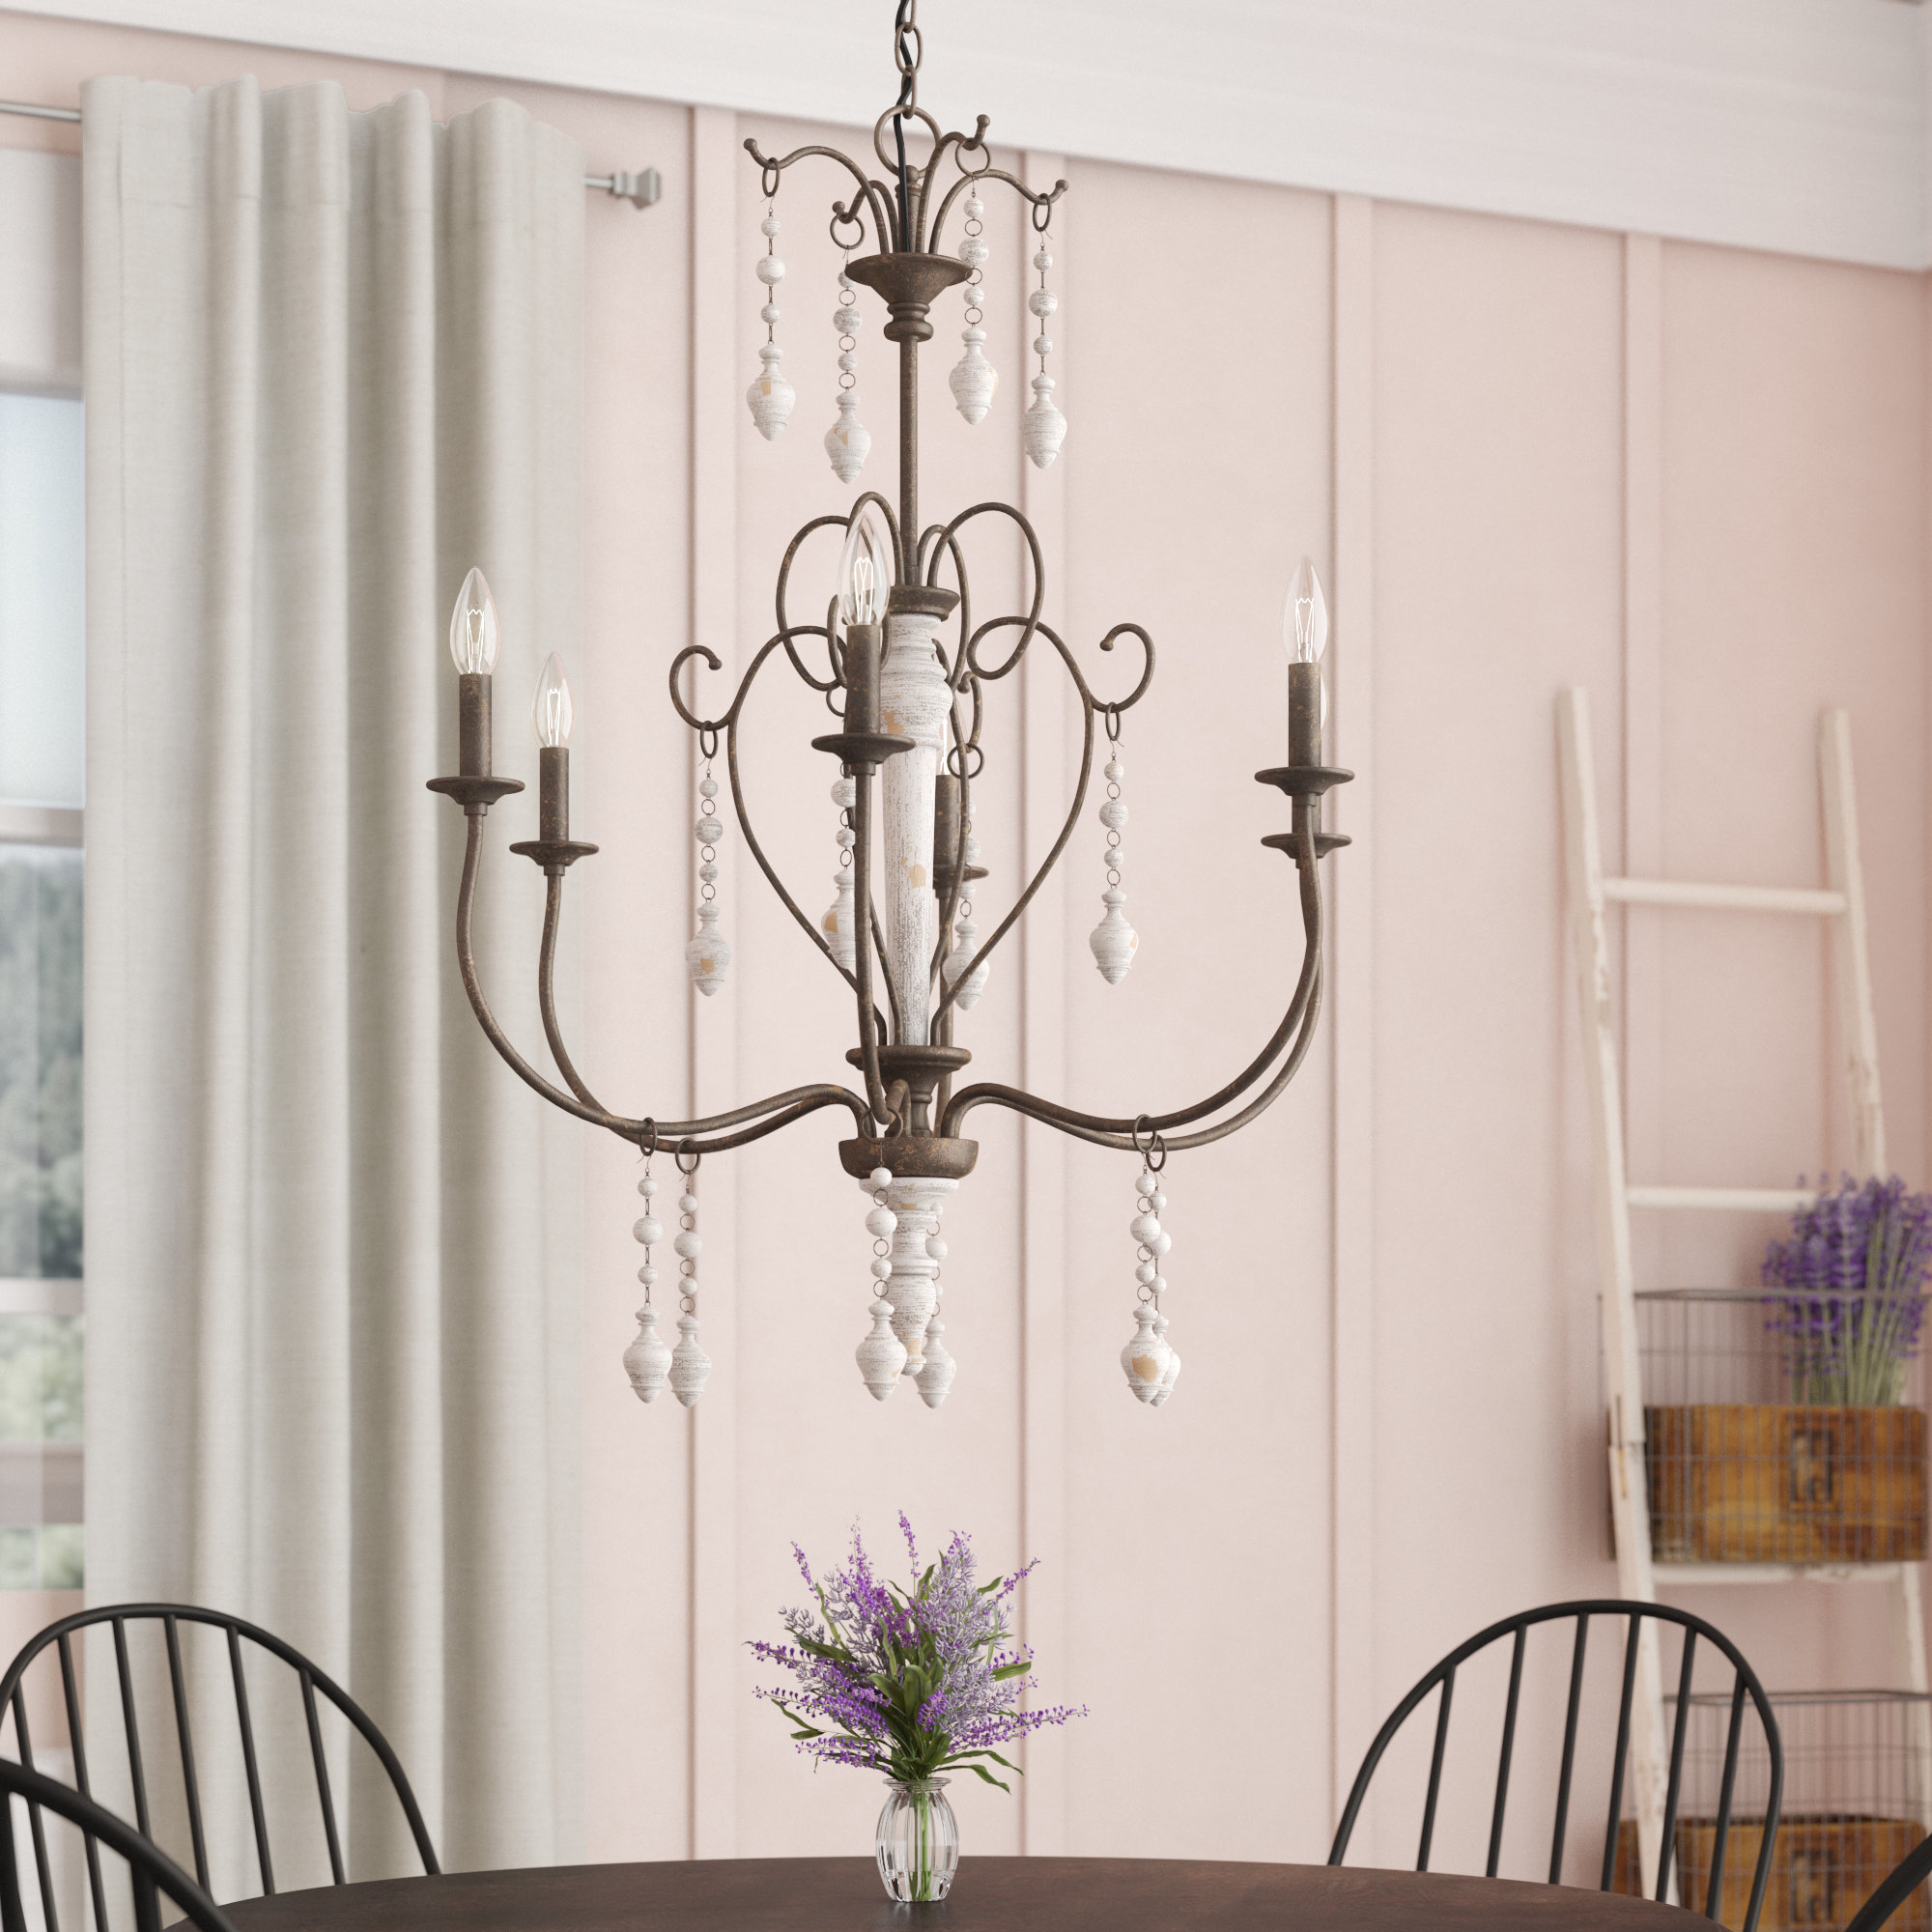 Bouchette Traditional 6-Light Candle Style Chandeliers in 2020 Lark Manor Bouchette Traditional 6-Light Candle Style